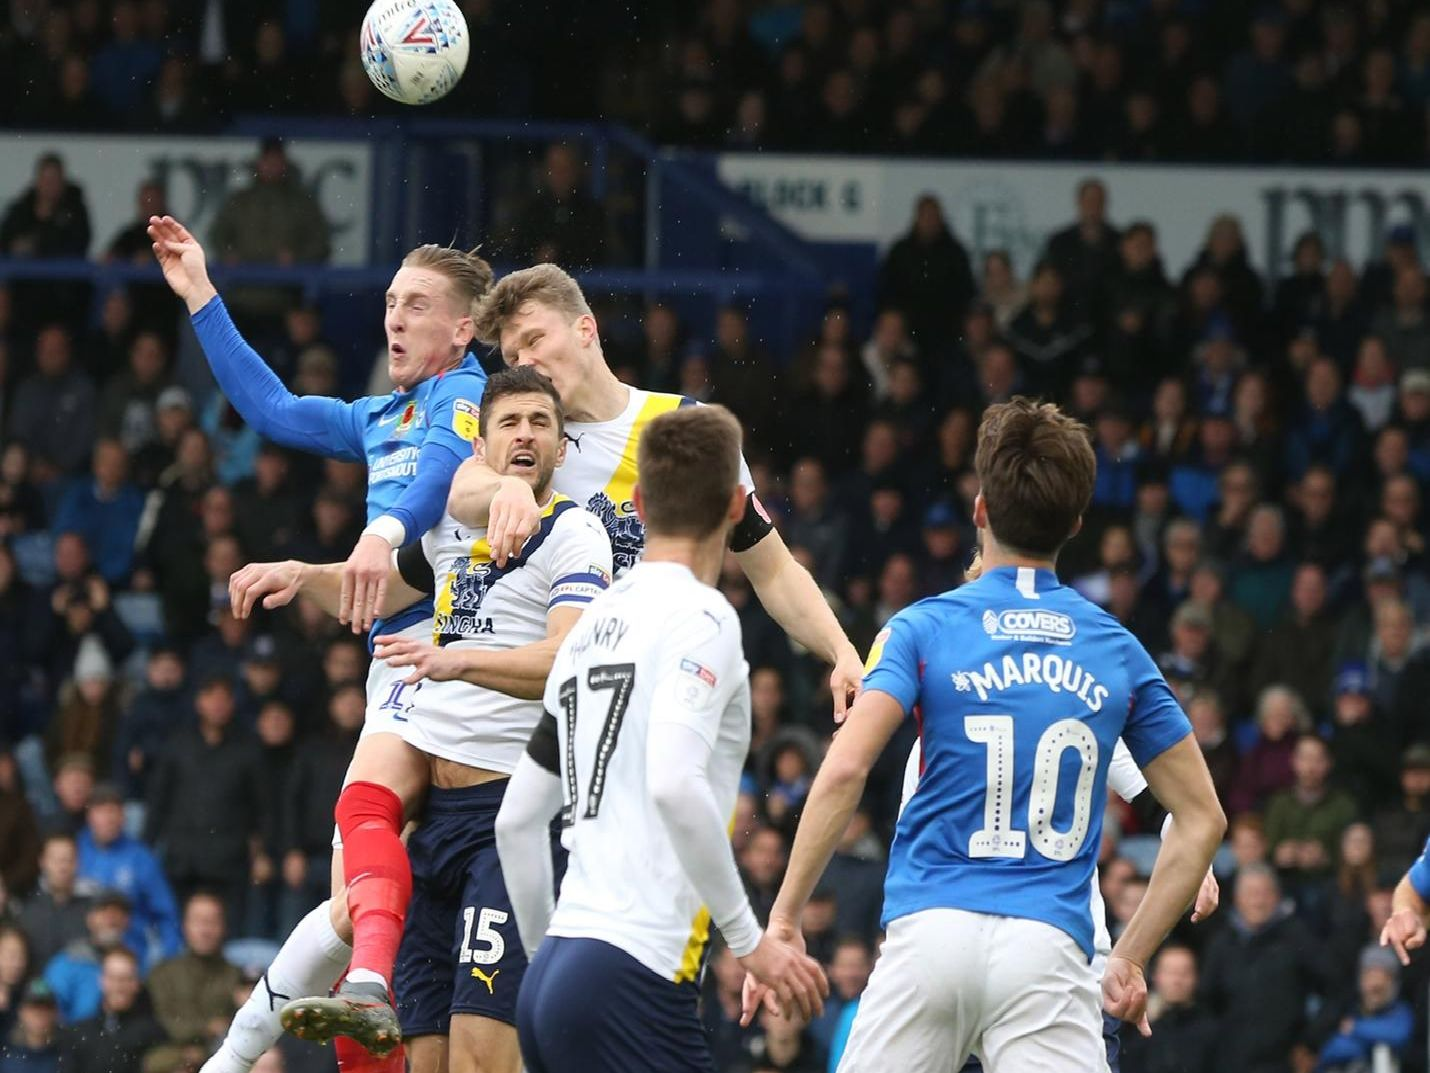 Portsmouth's Ronan Curtis battles for the ball